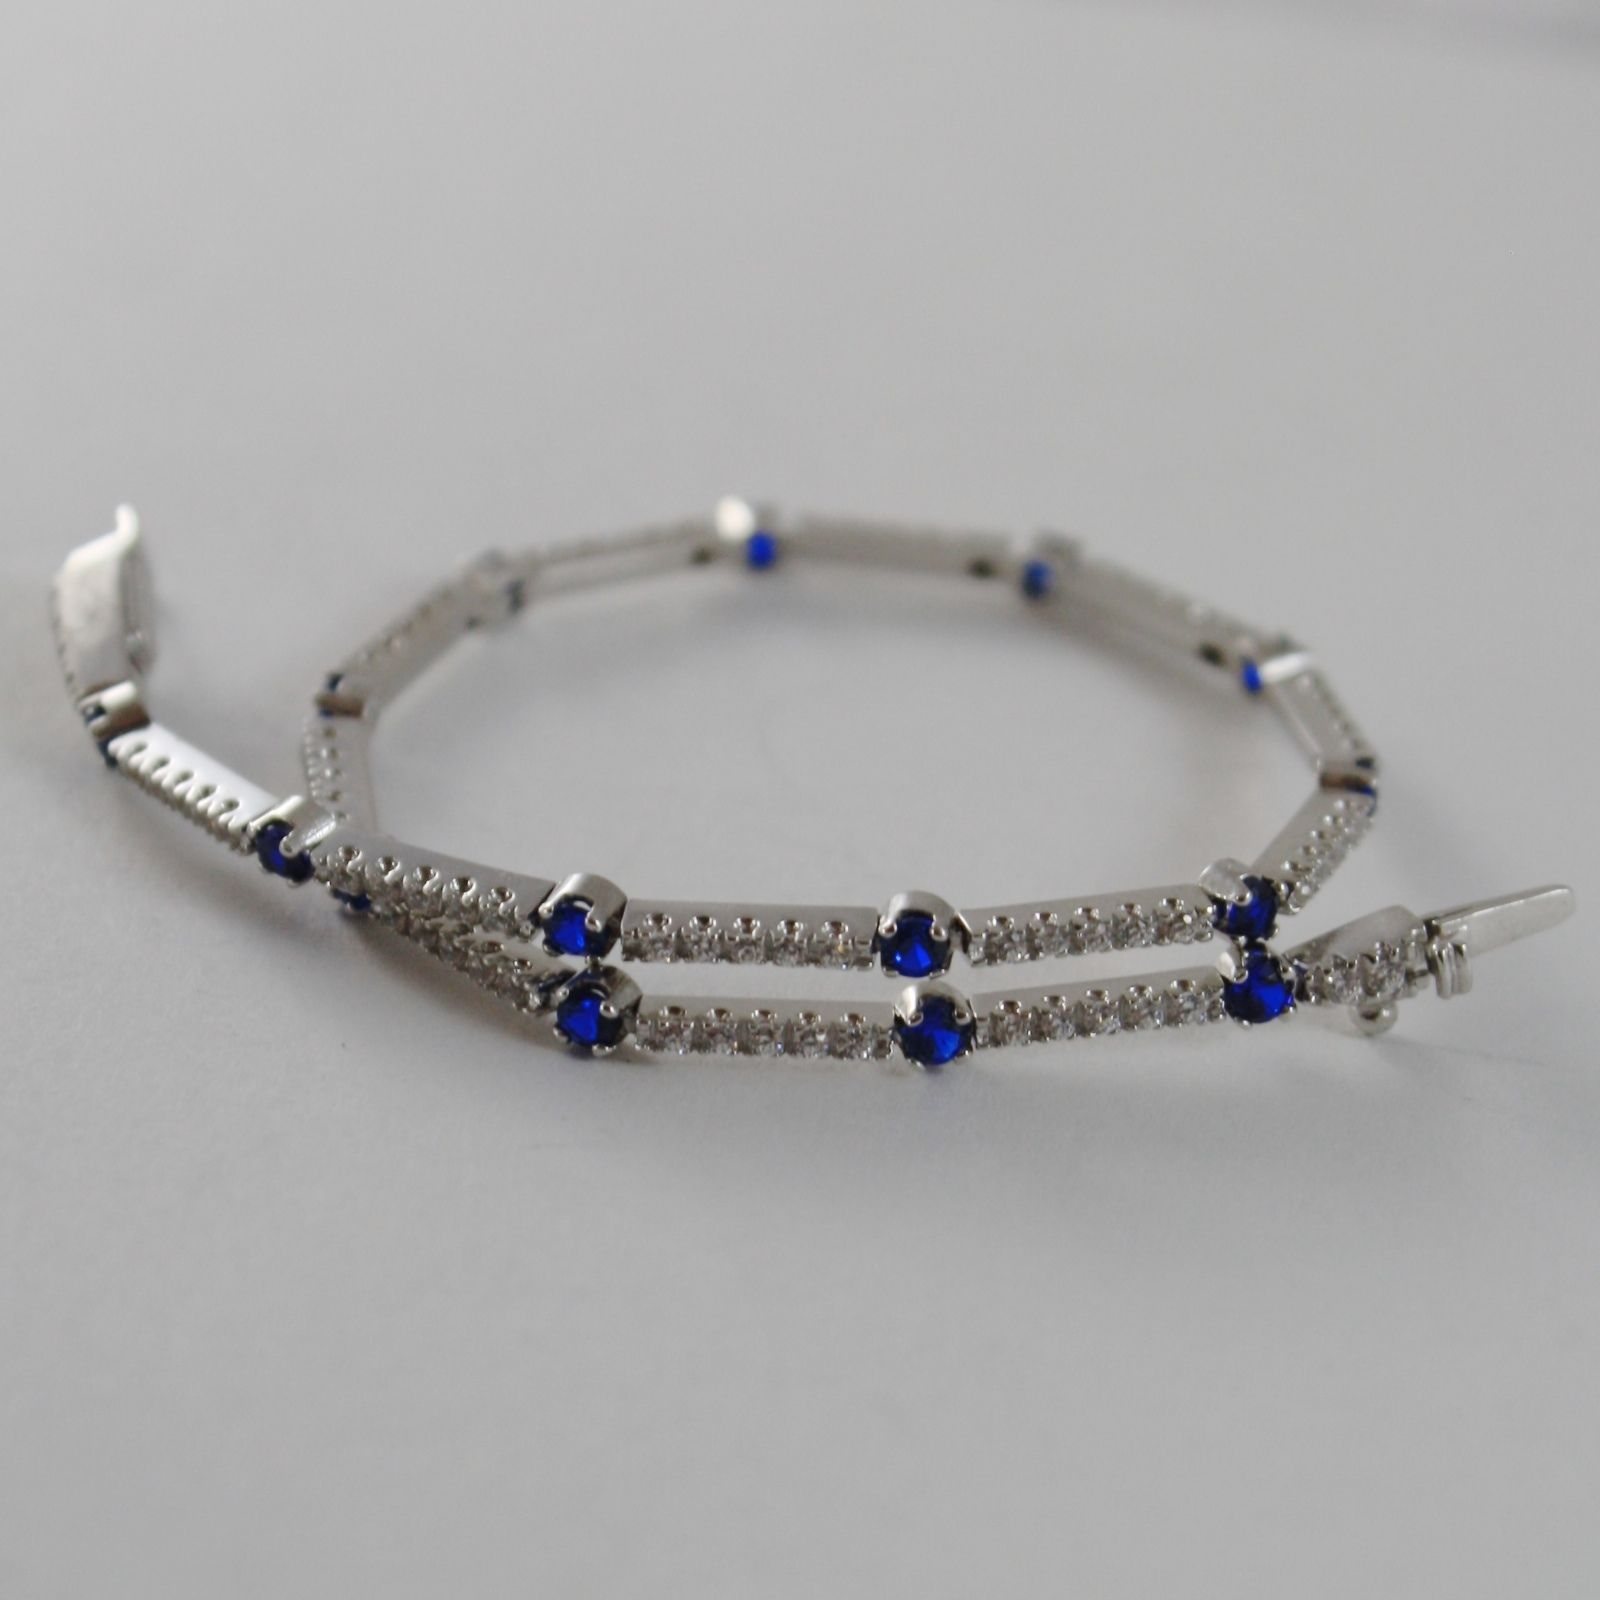 SOLID 18K WHITE GOLD TENNIS BRACELET WITH WHITE AND BLUE ZIRCONIA, MADE IN ITALY